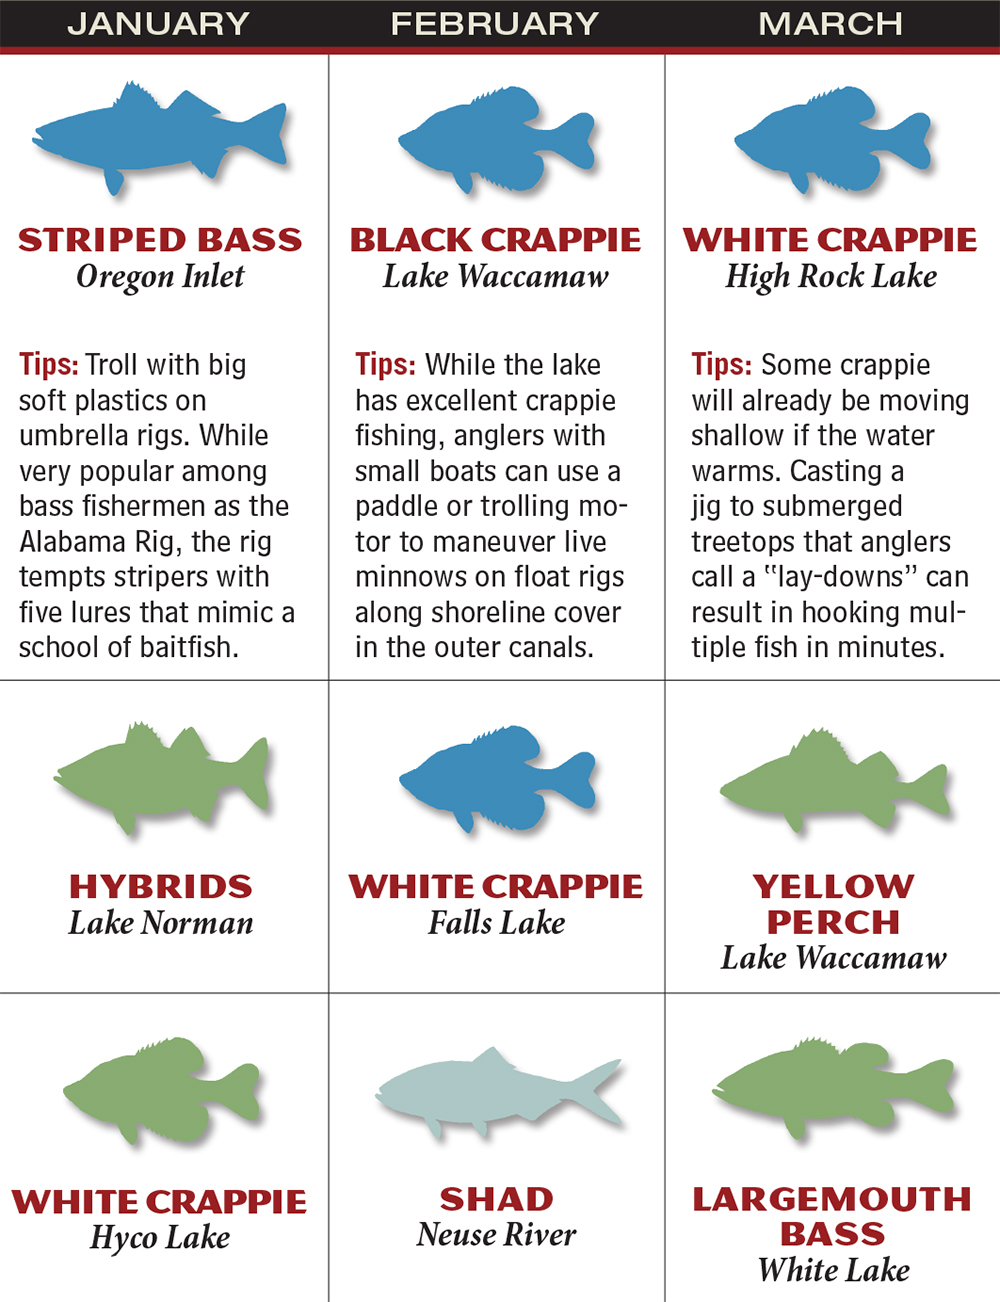 North carolina 2016 fishing calendar game fish for What fish are biting this time of year